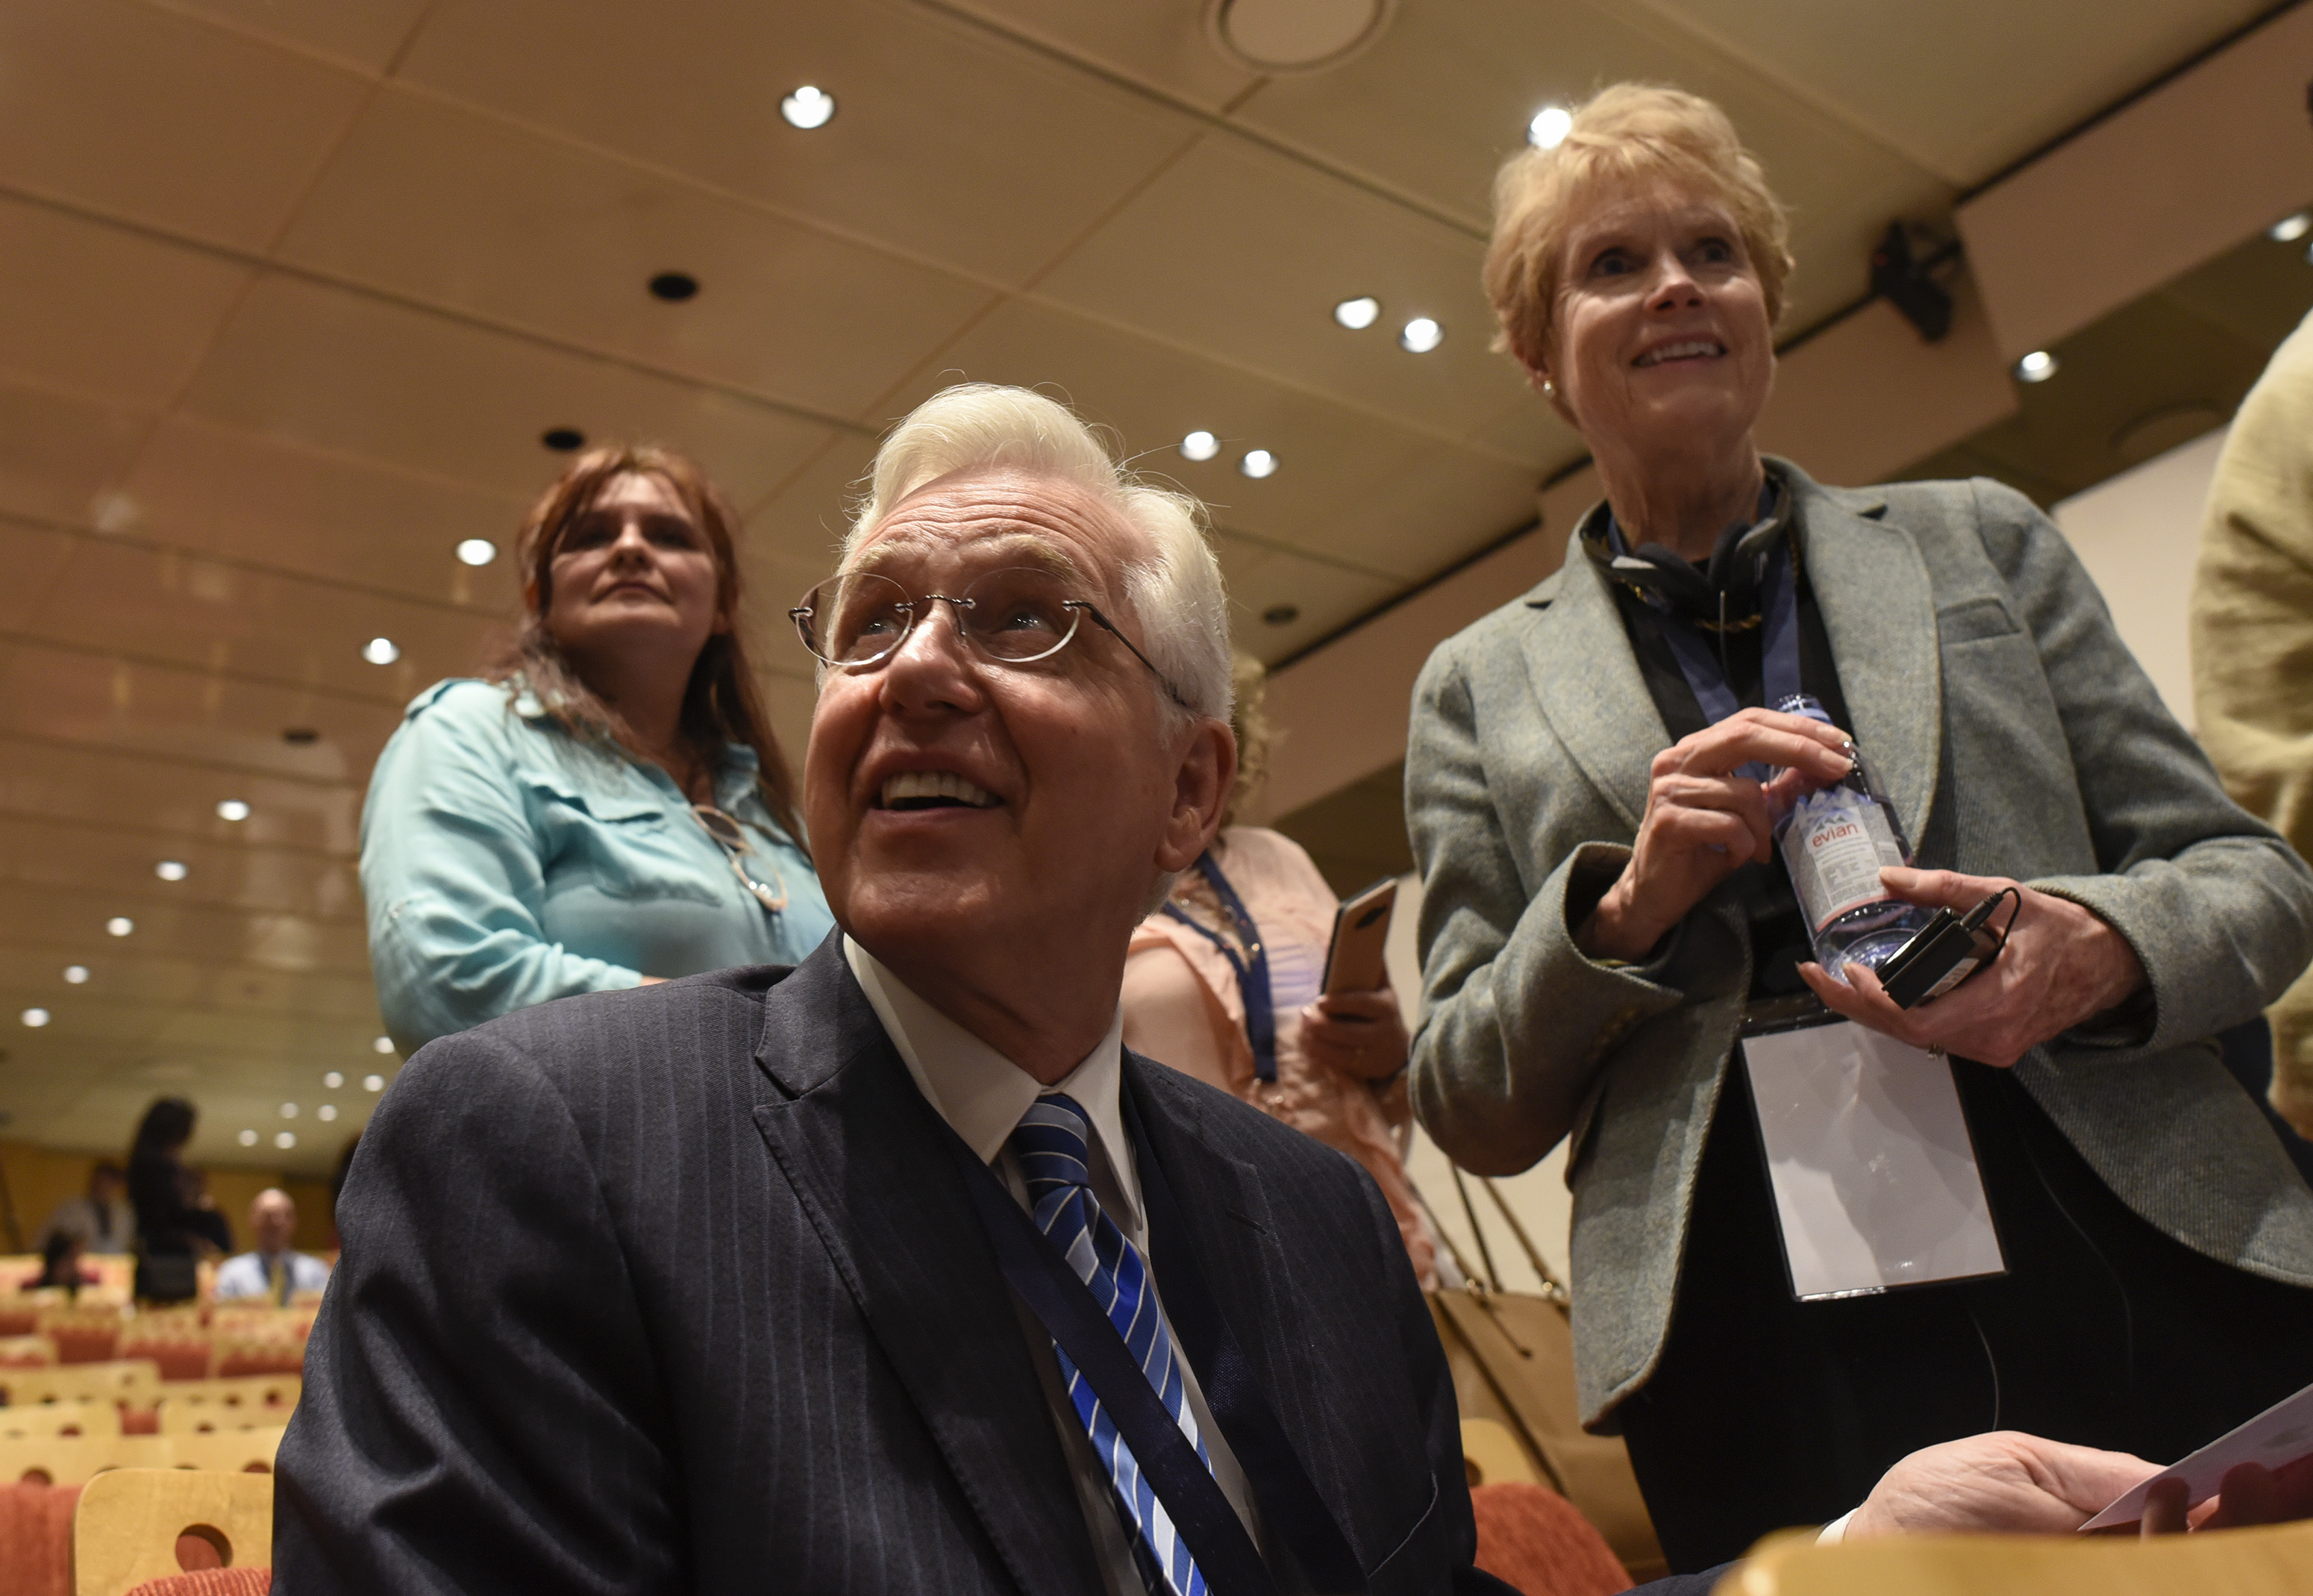 Elder D. Todd Christofferson and his wife, Sister Kathy Christofferson, greet others during a break at the G20 Interfaith Forum in Buenos Aires, Argentina, on Wednesday, Sept. 26, 2018.